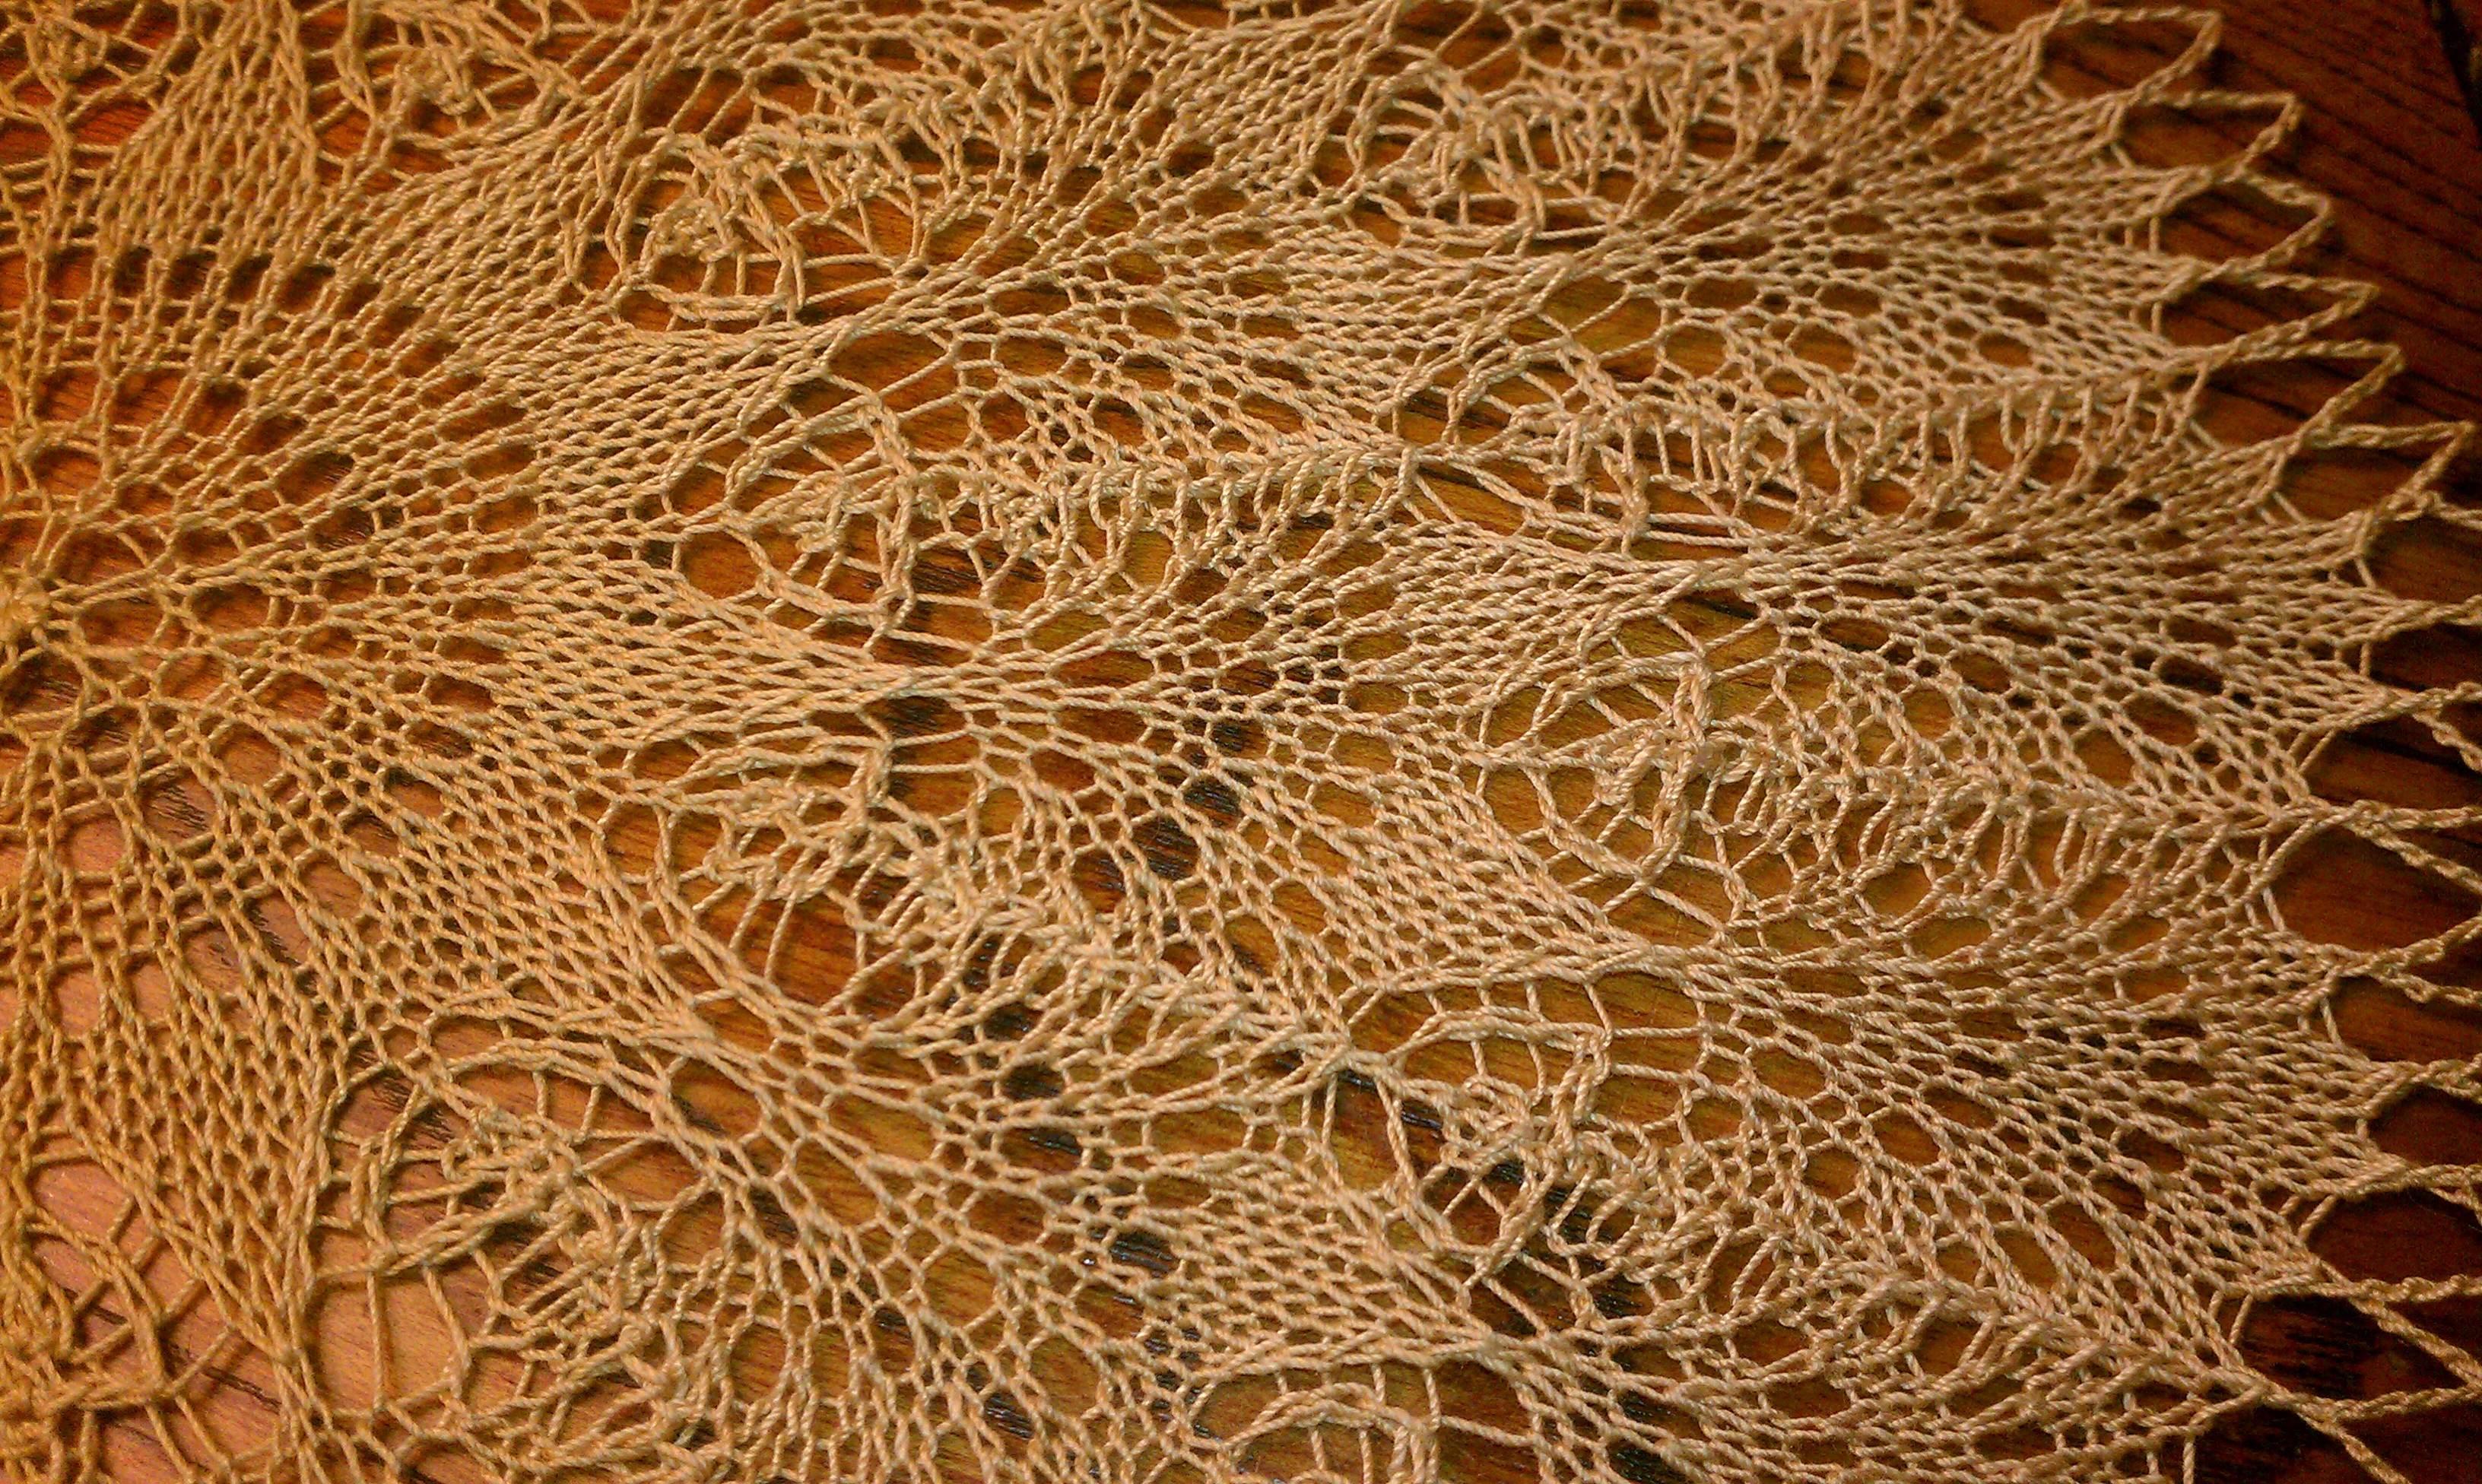 Queen's Lace Doily